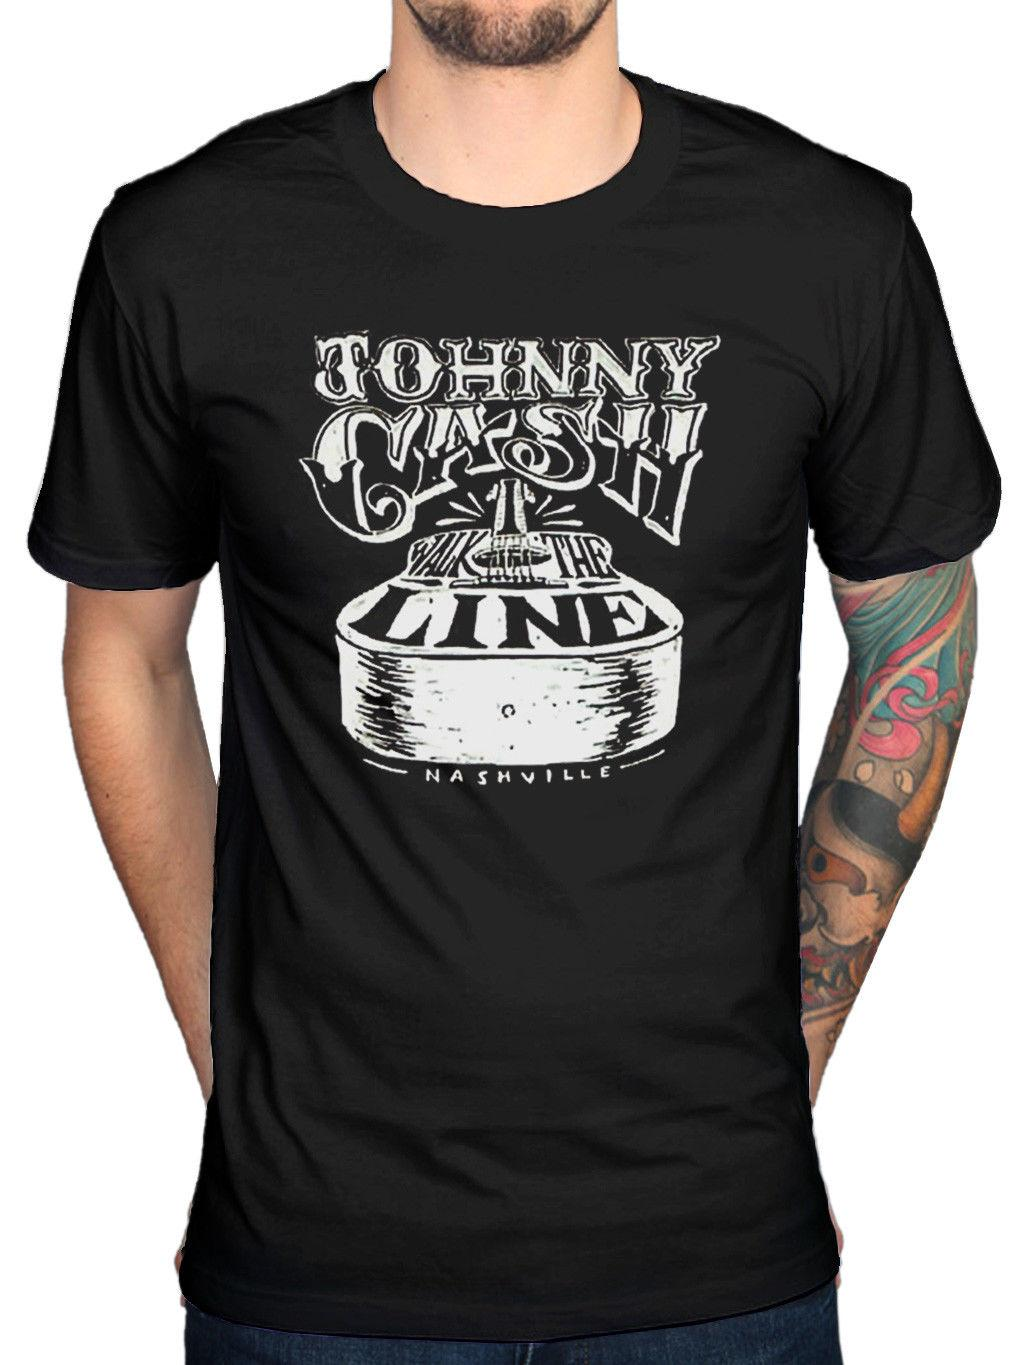 5734005a Official Johnny Cash Walk The Line T Shirt A Thing Called Love Ragged Old  Flag 100% Cotton For Man Fashion Style Men Tee Ts Shirt Buy Funny T Shirts  From ...